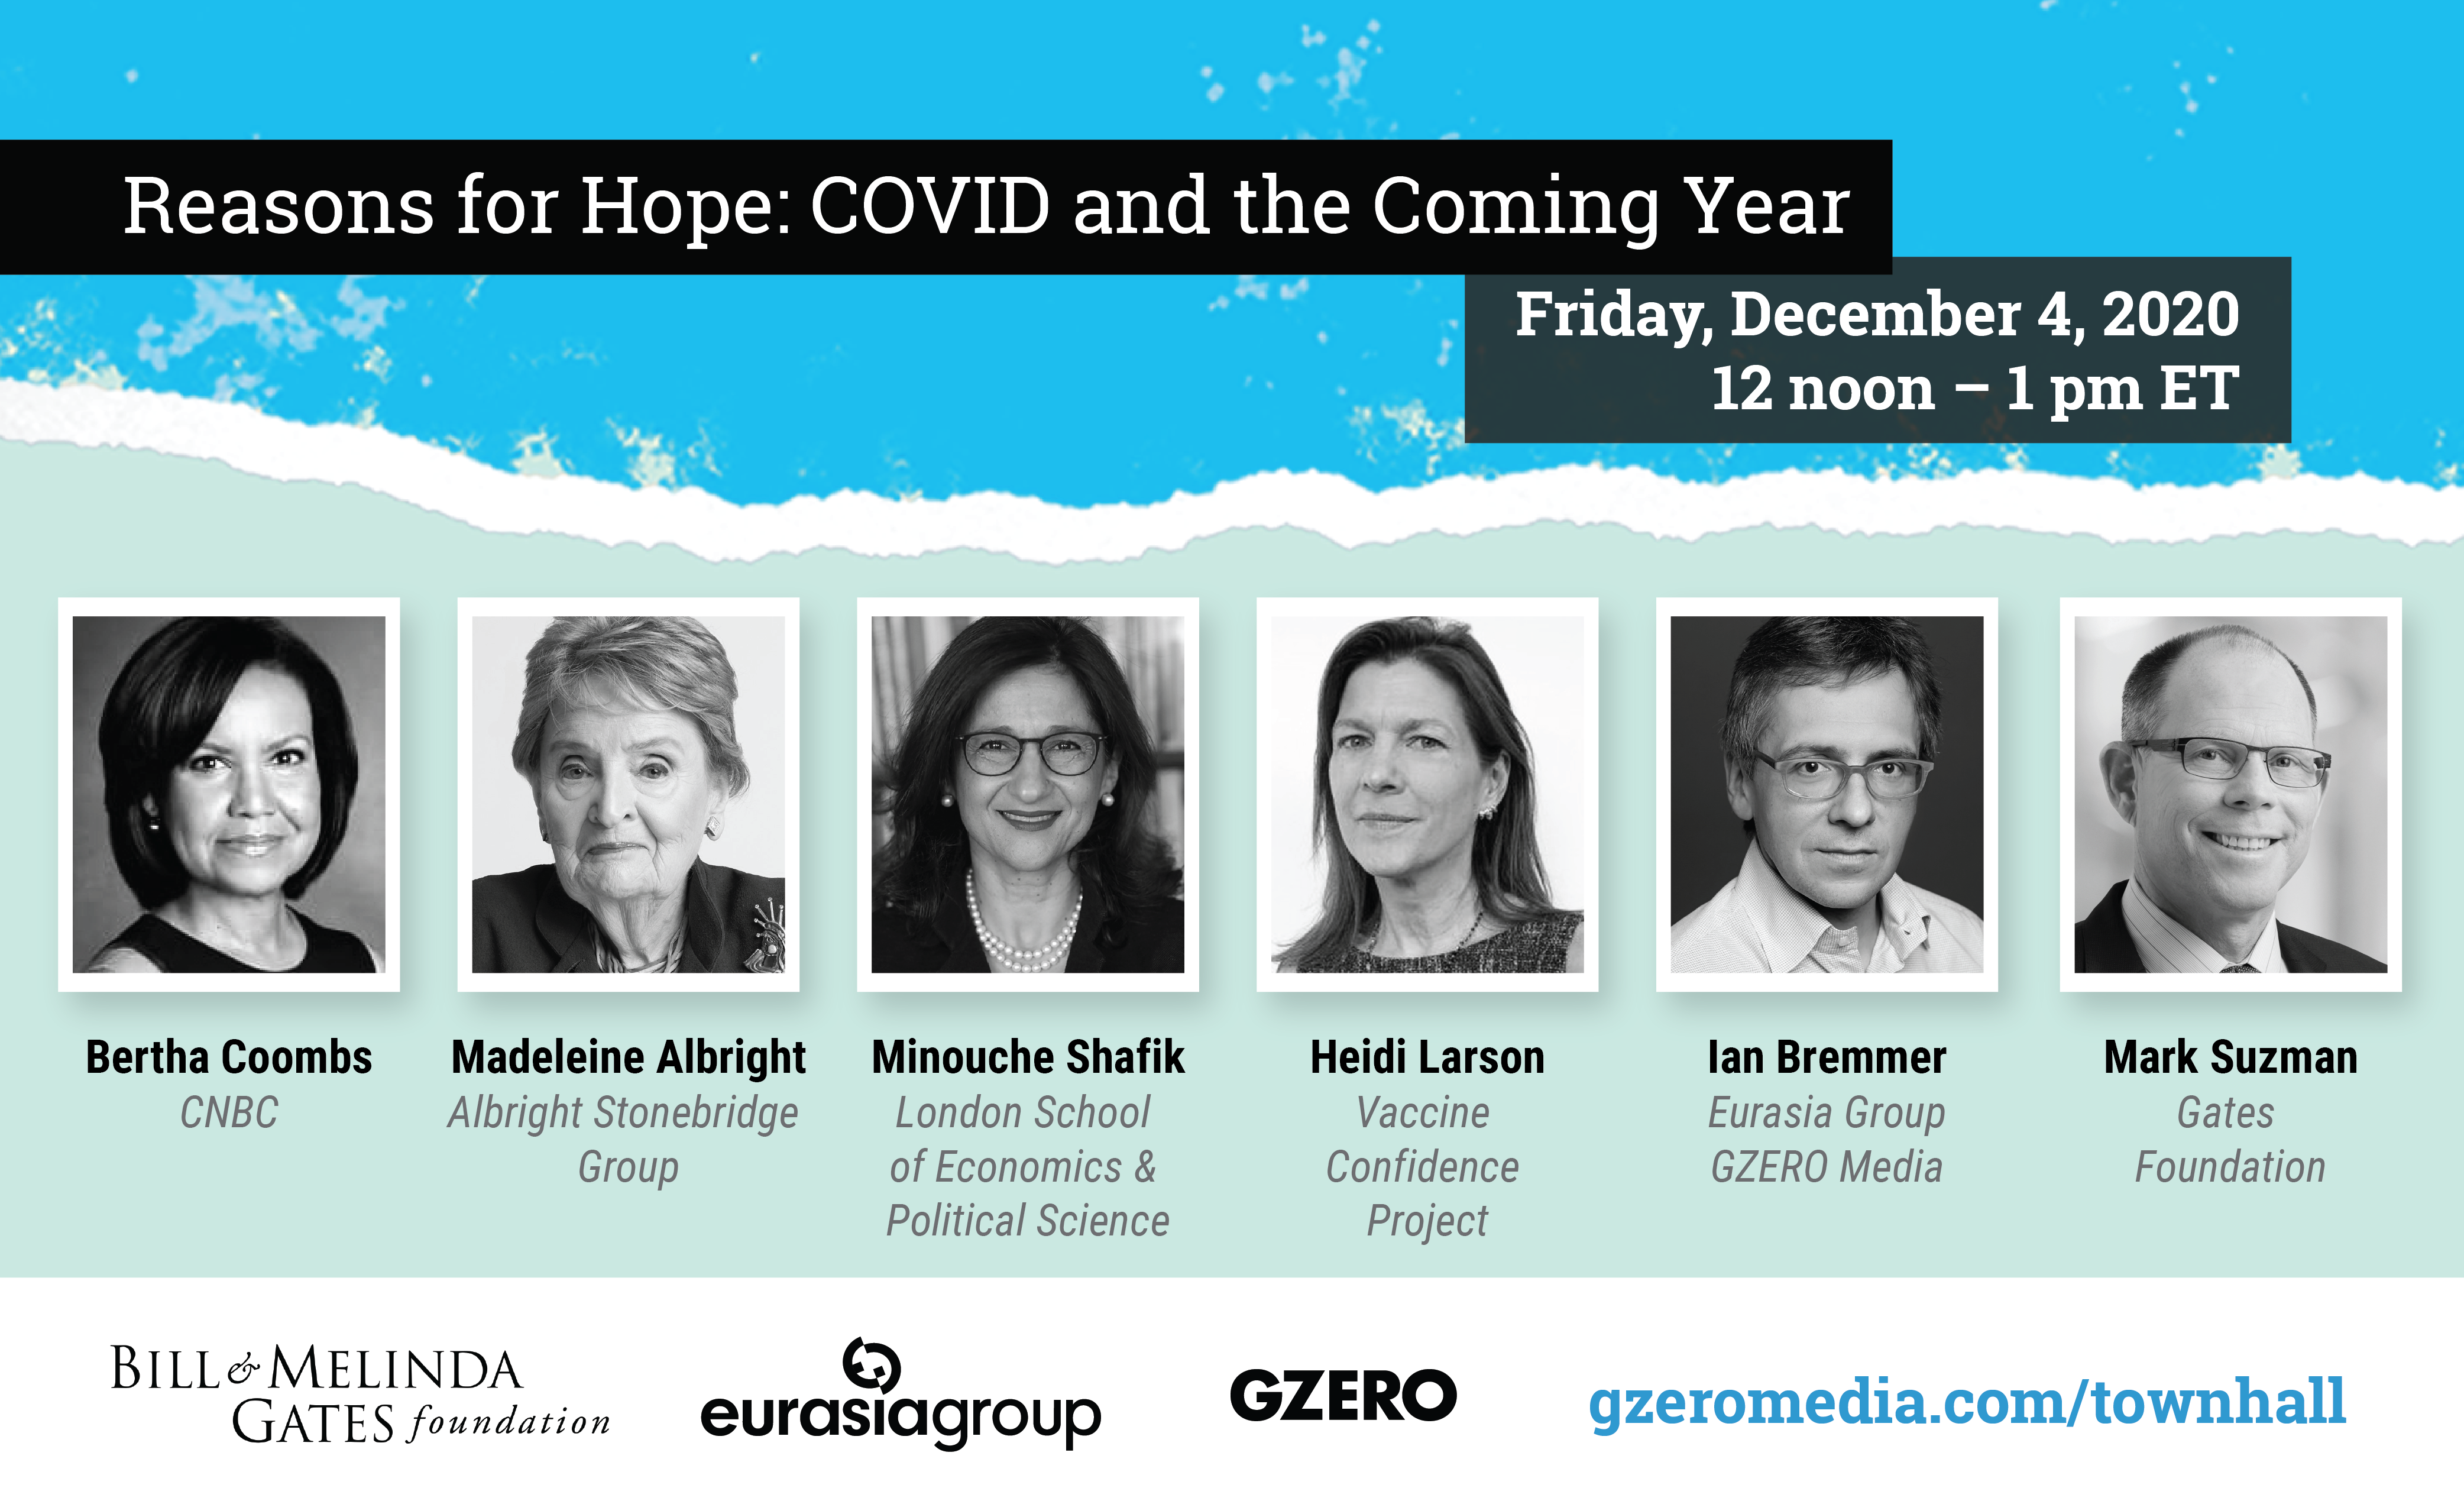 Watch our expert panel on reasons for hope in the COVID crisis